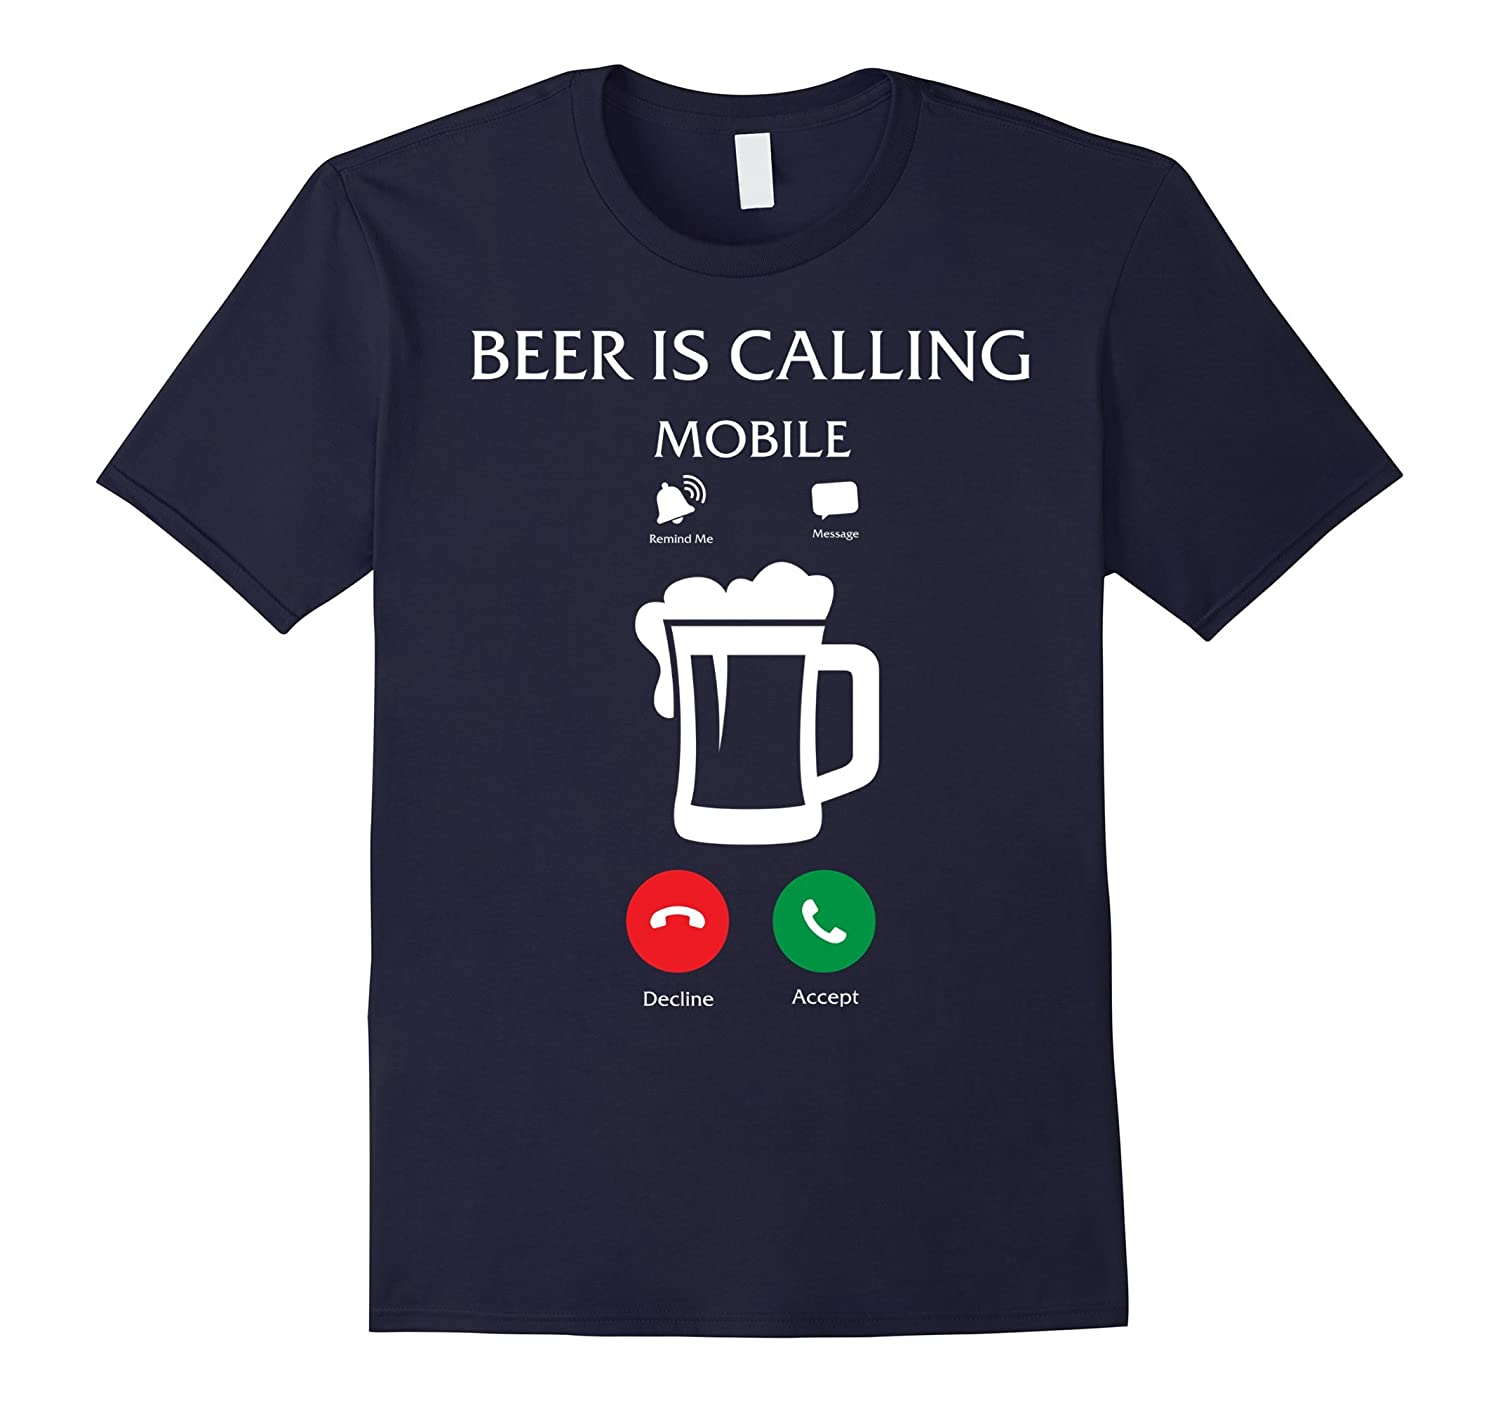 Beer Is Calling with Mobile Phone Design - Funny T-Shirt-Vaci